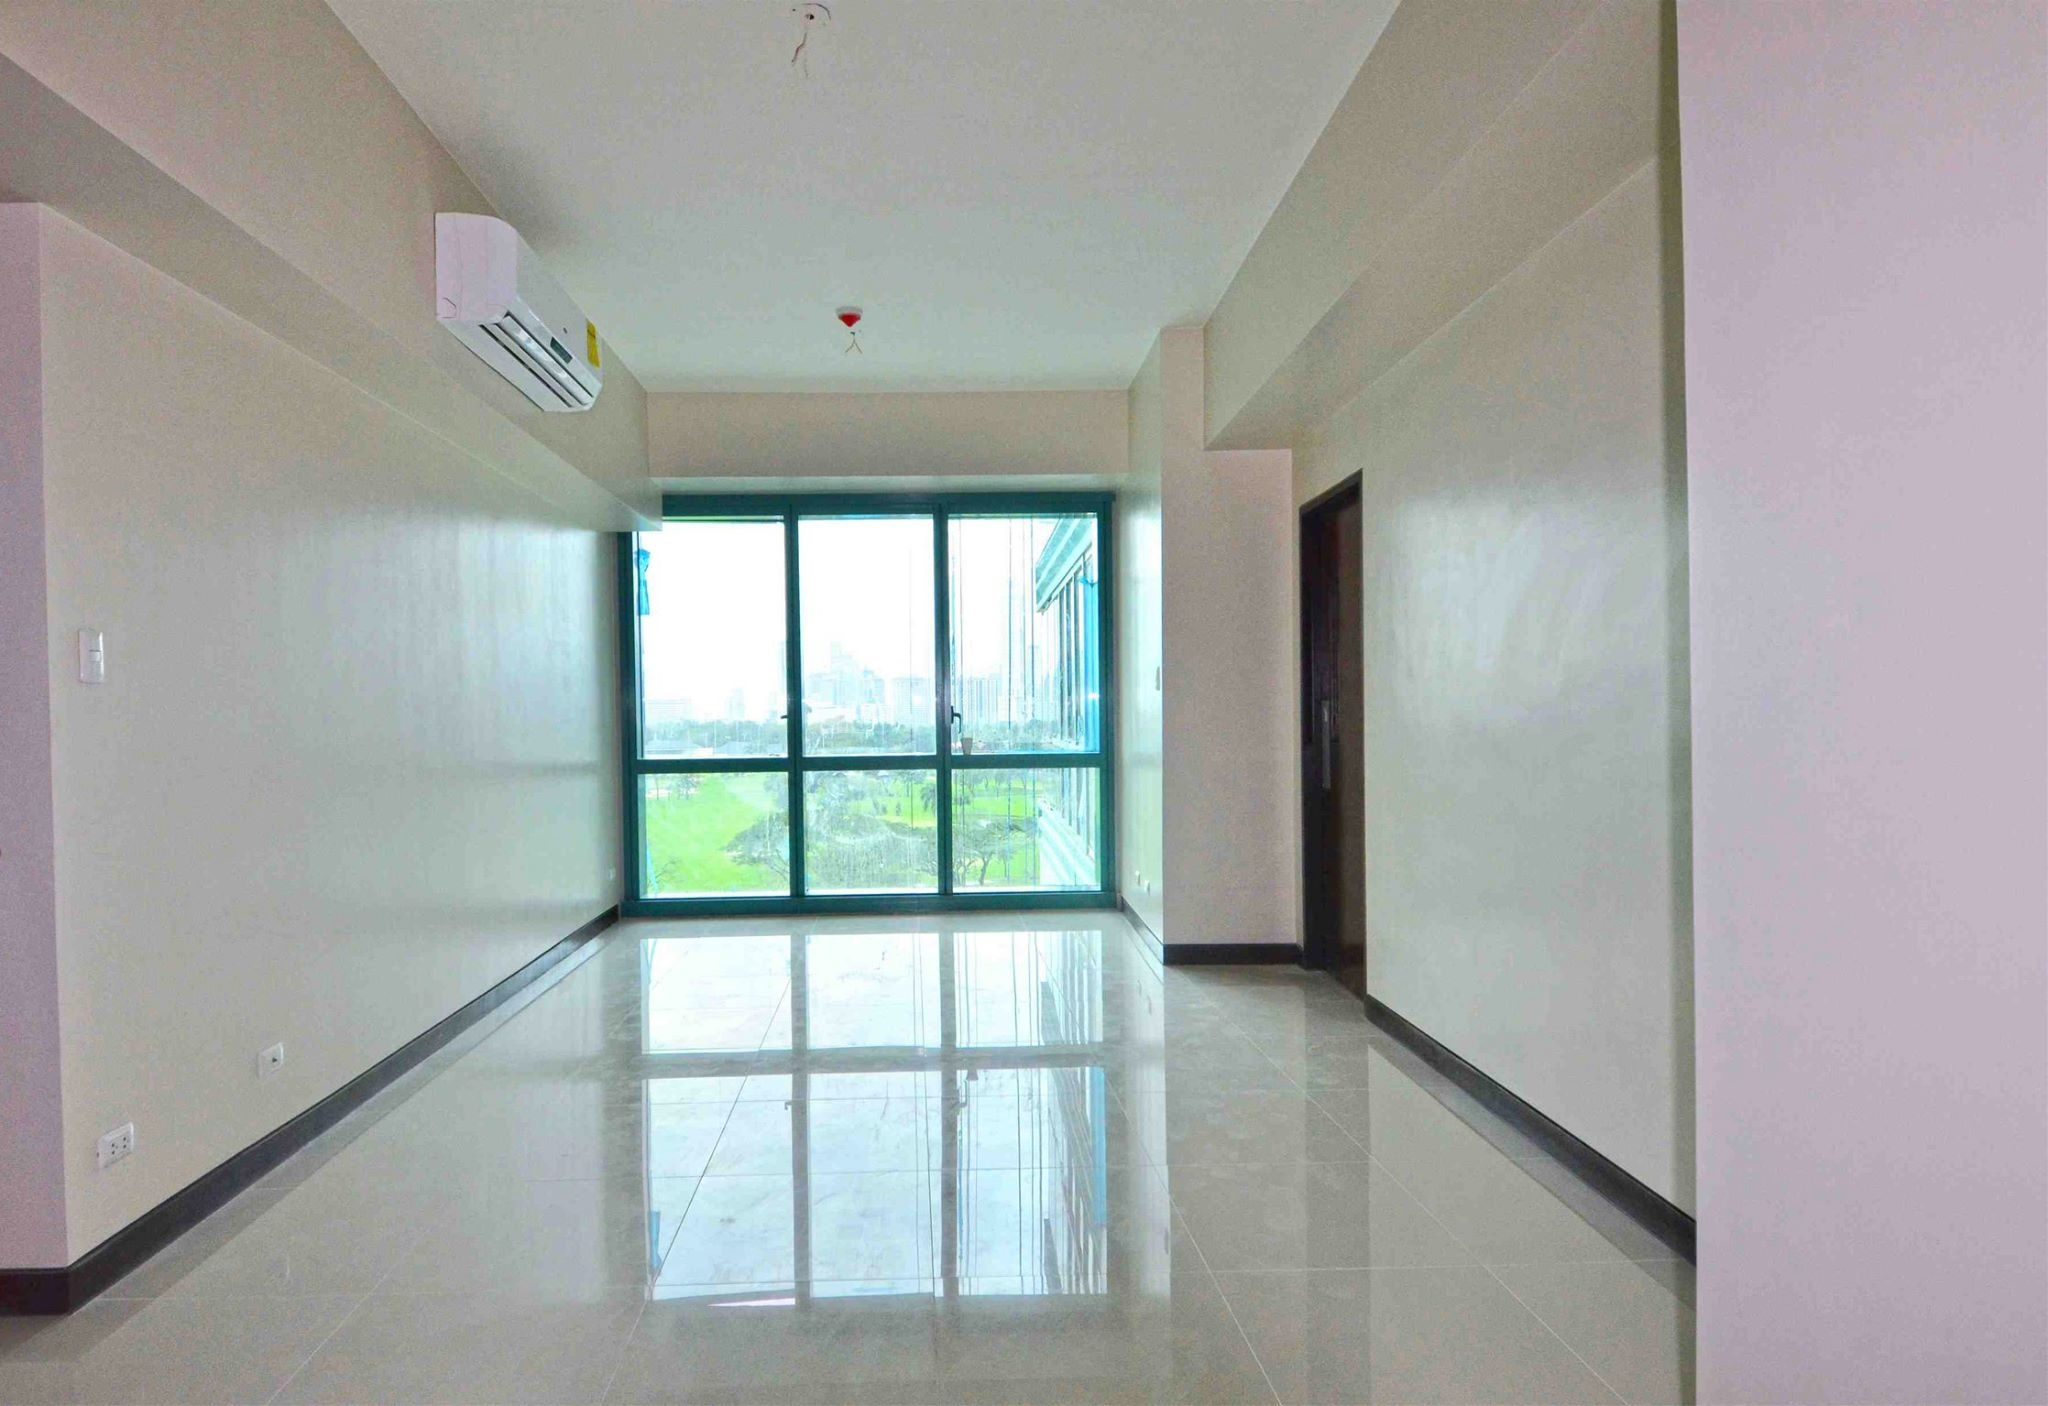 FOR SALE: Apartment / Condo / Townhouse Manila Metropolitan Area > Other areas 6